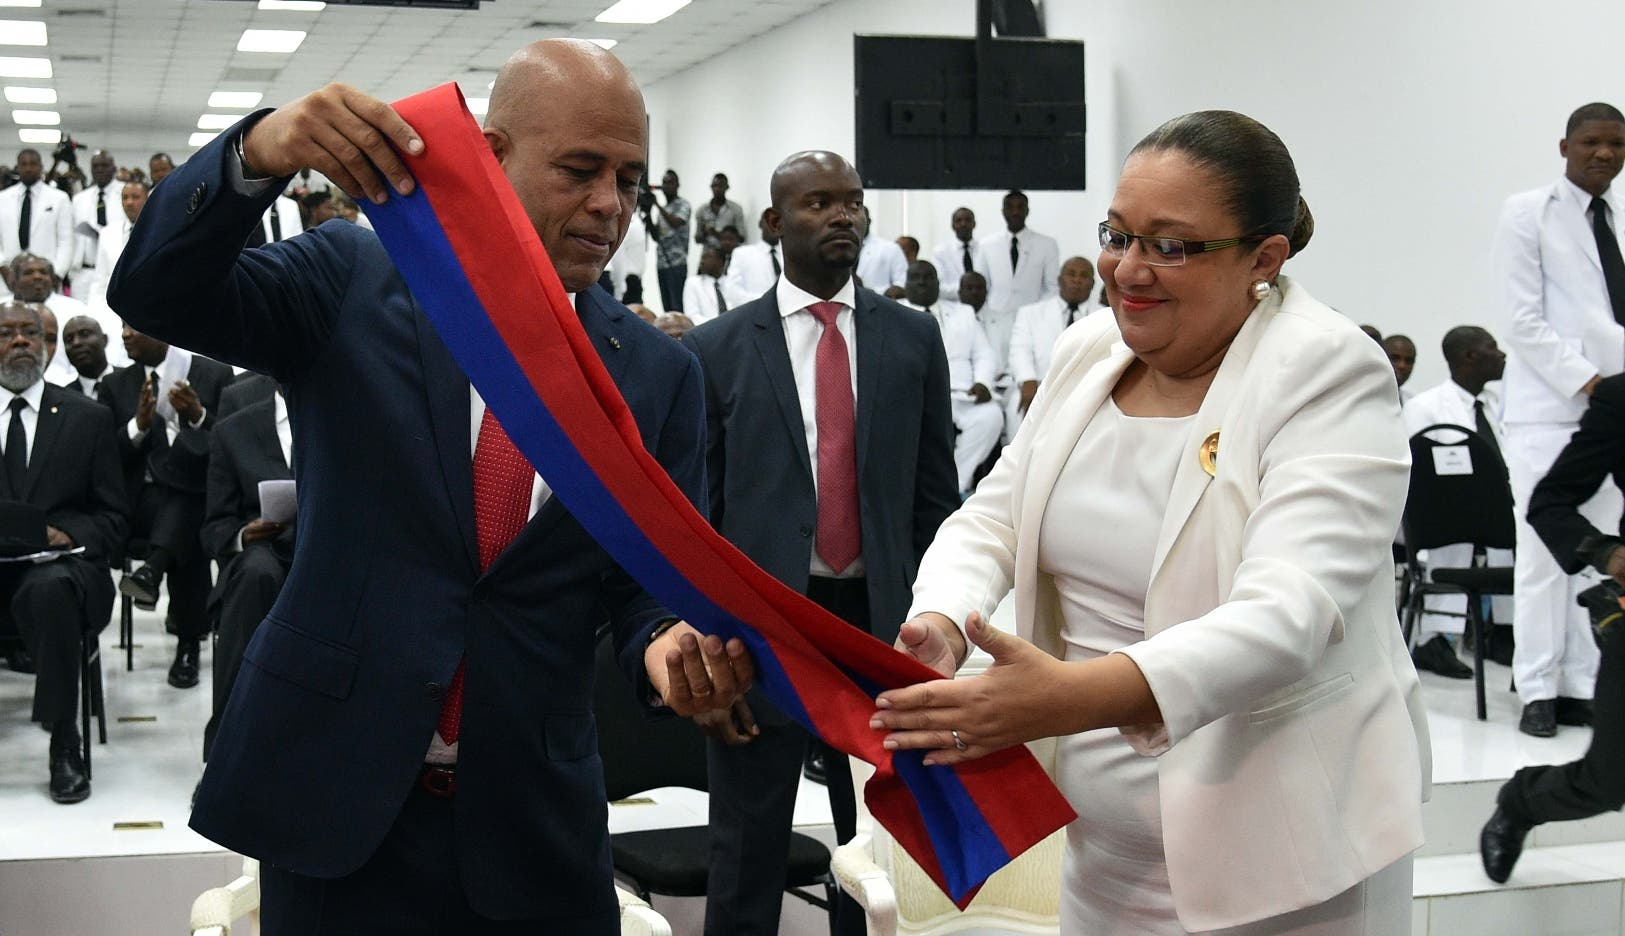 Haitian President, Michel Martelly(C)with the help of First Lady Sophia Martelly, removes his presidential sash during the ceremony in the Haitian Parliament February 7, 2016 in Port-au-Prince where Martelly gave his last address to the nation before stepping down as president. Haitian politicians inked a last-minute agreement to install a transitional government February 6, just hours before President Michel Martelly was scheduled to step down with no replacement in line. / AFP / HECTOR RETAMAL